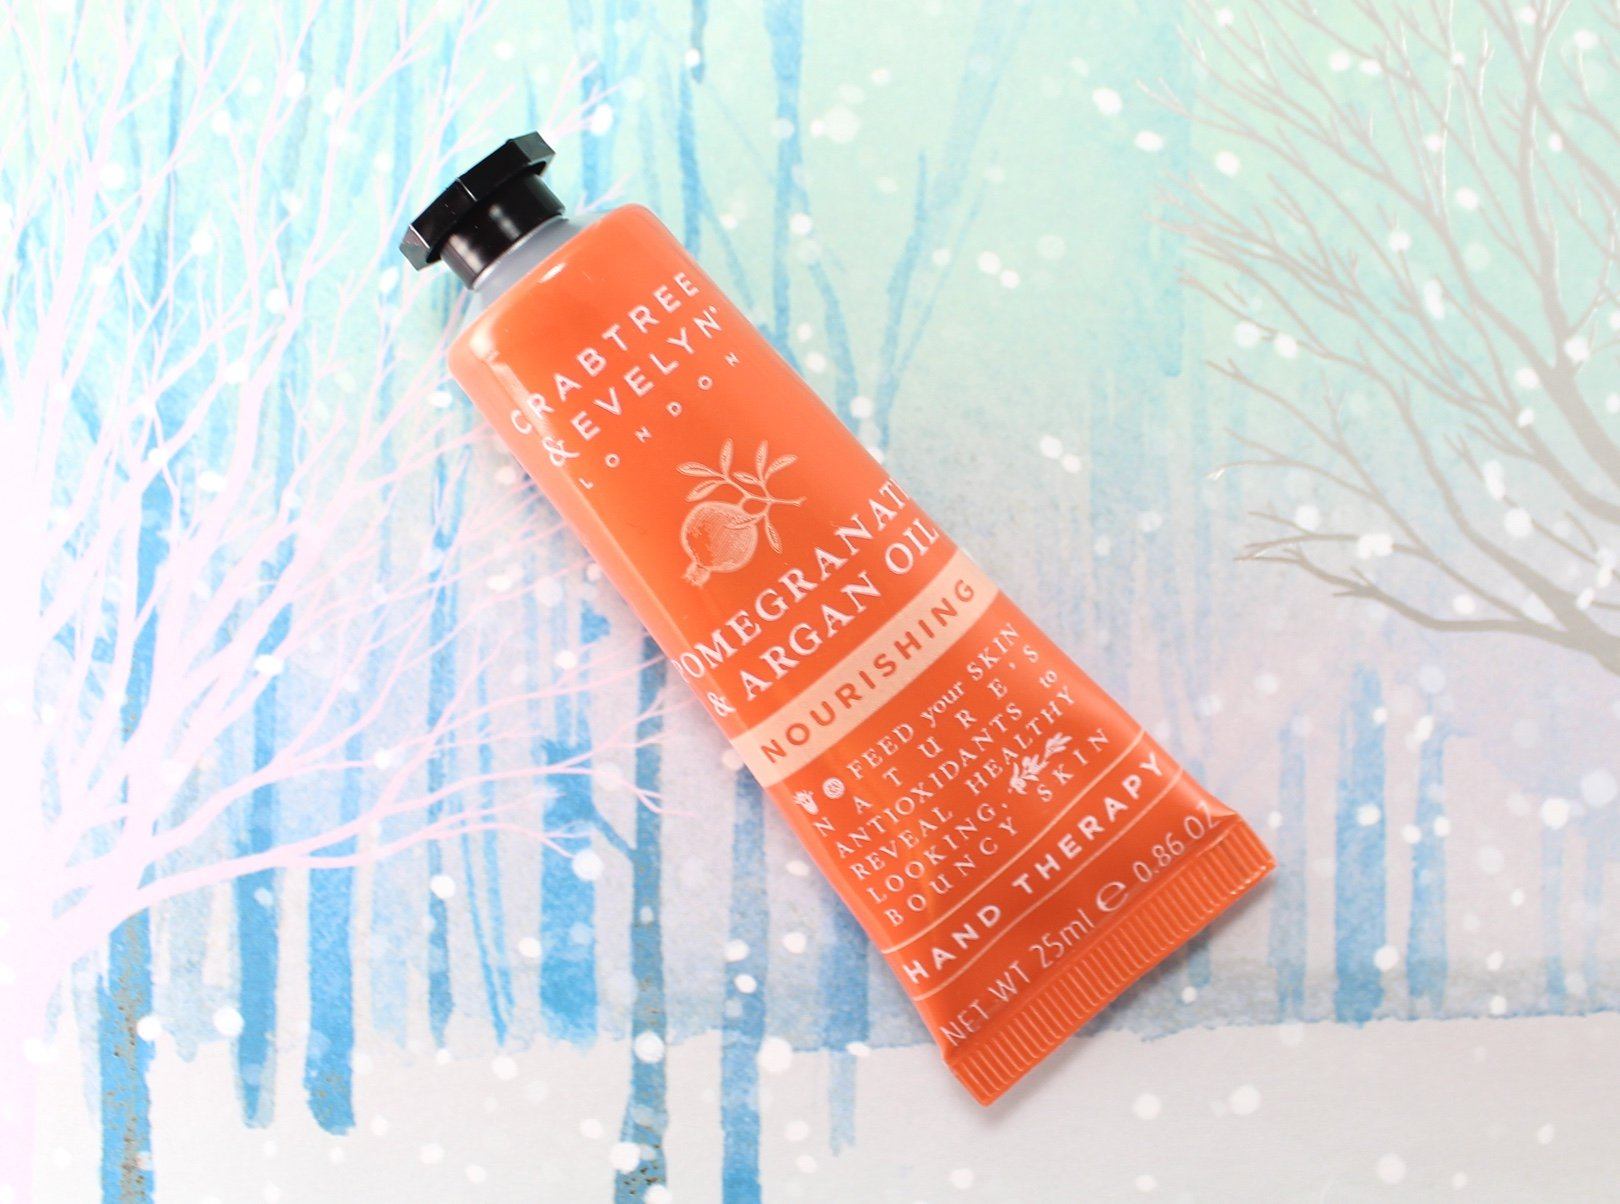 12 days of crabtree & evelyn advent calendar – day 12